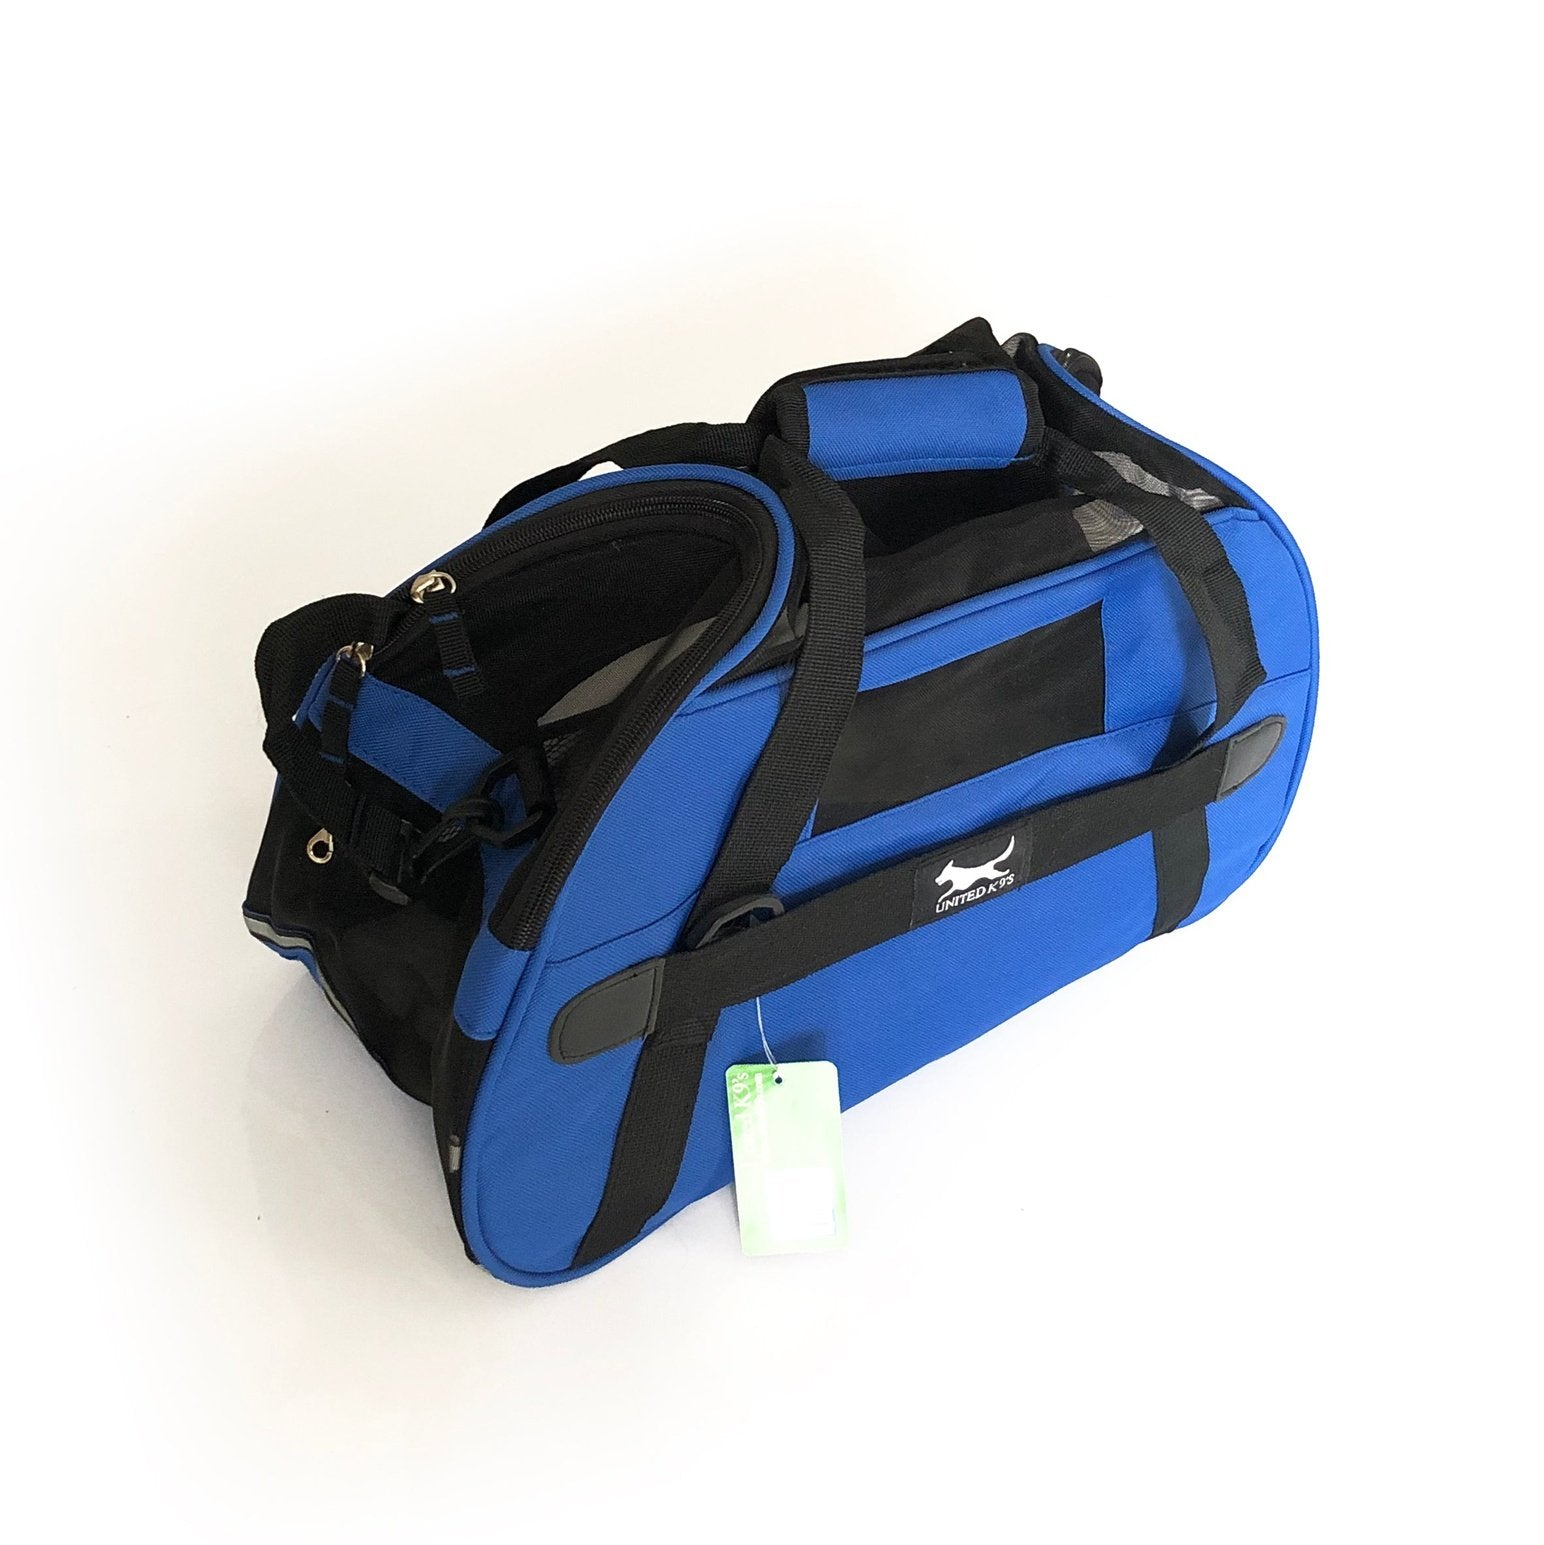 United K-9 Breezy Bag in Blue